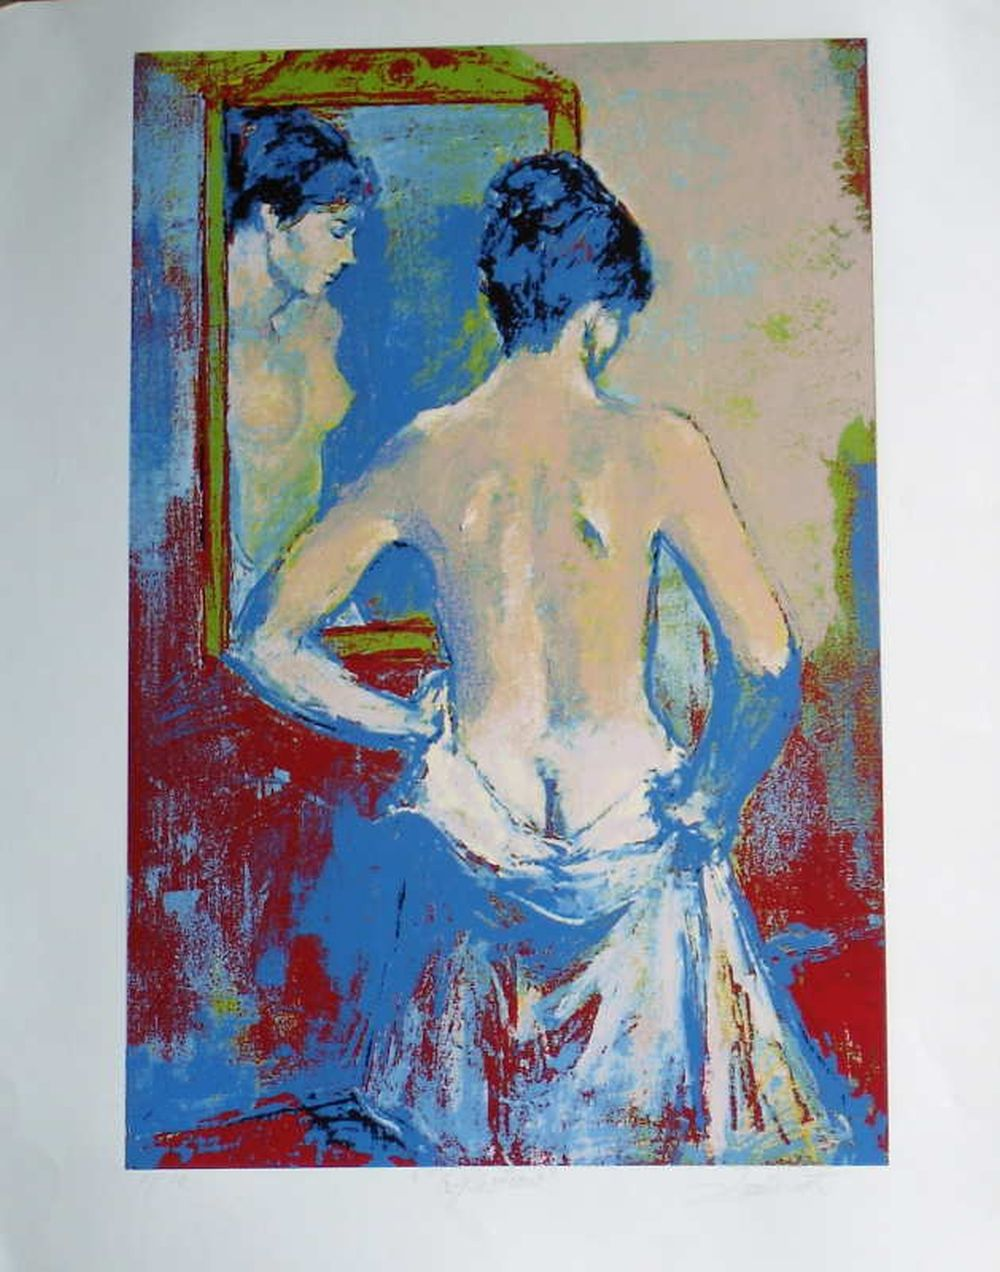 Jan De Ruth, Reflection, Signed Lithograph